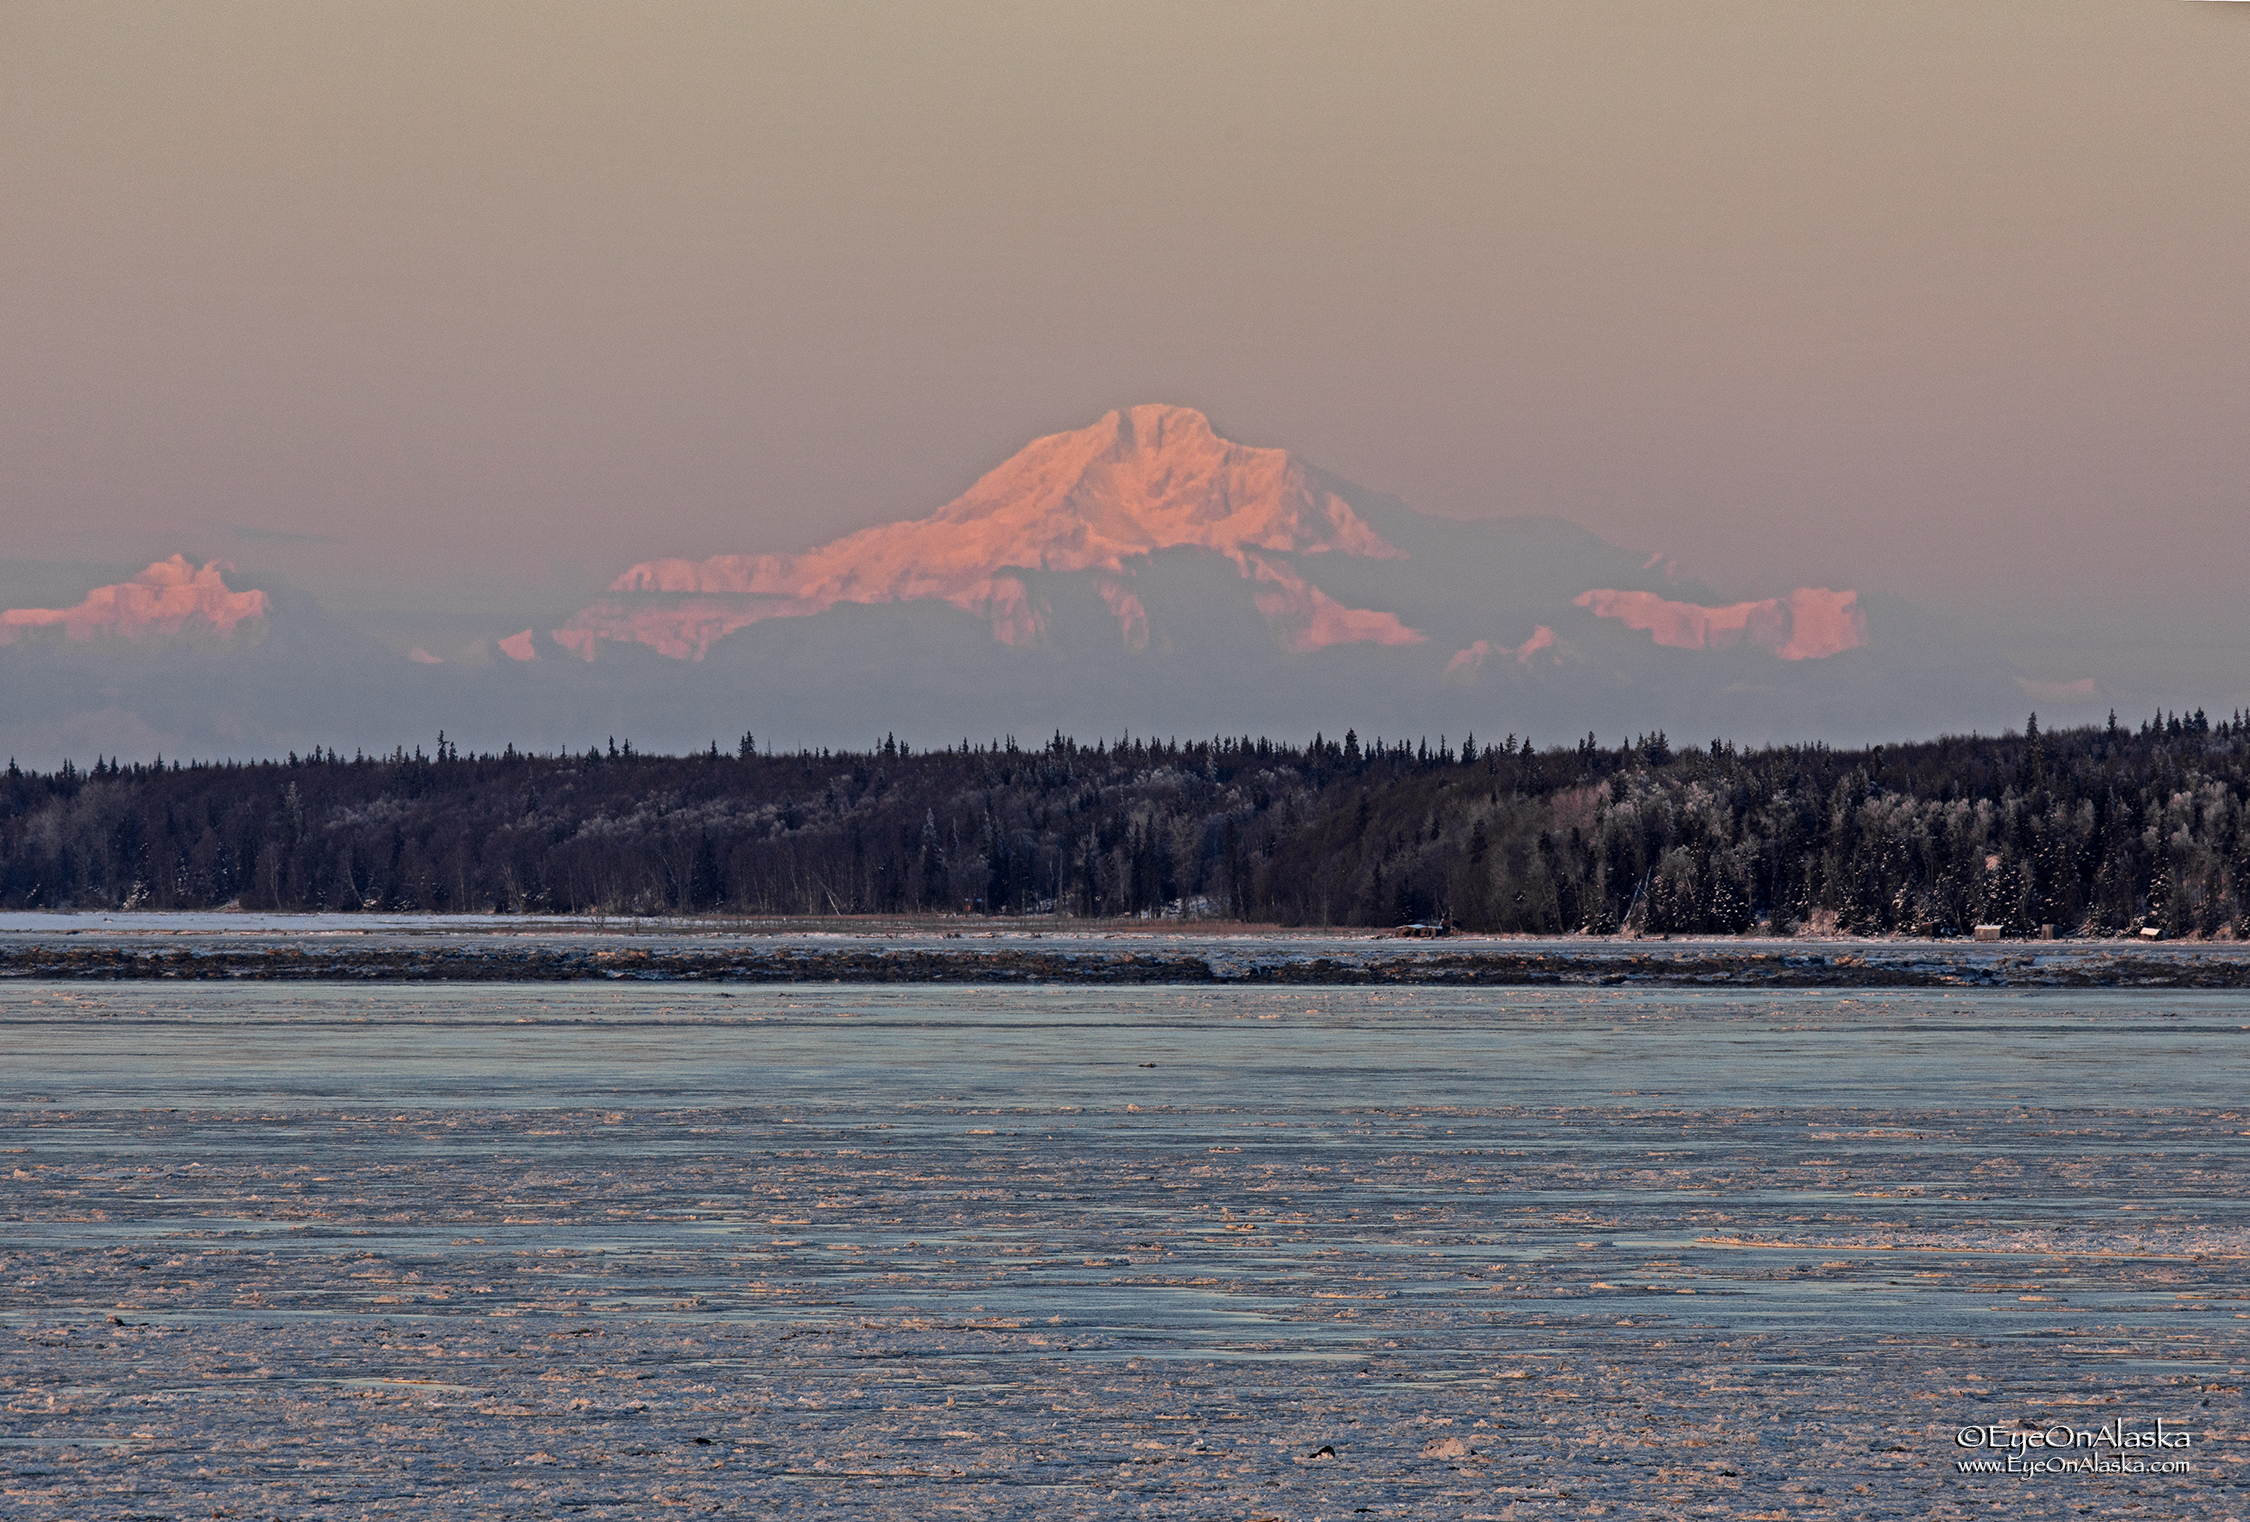 Denali from sea-level. The view from Earthquake Park near downtown Anchorage.